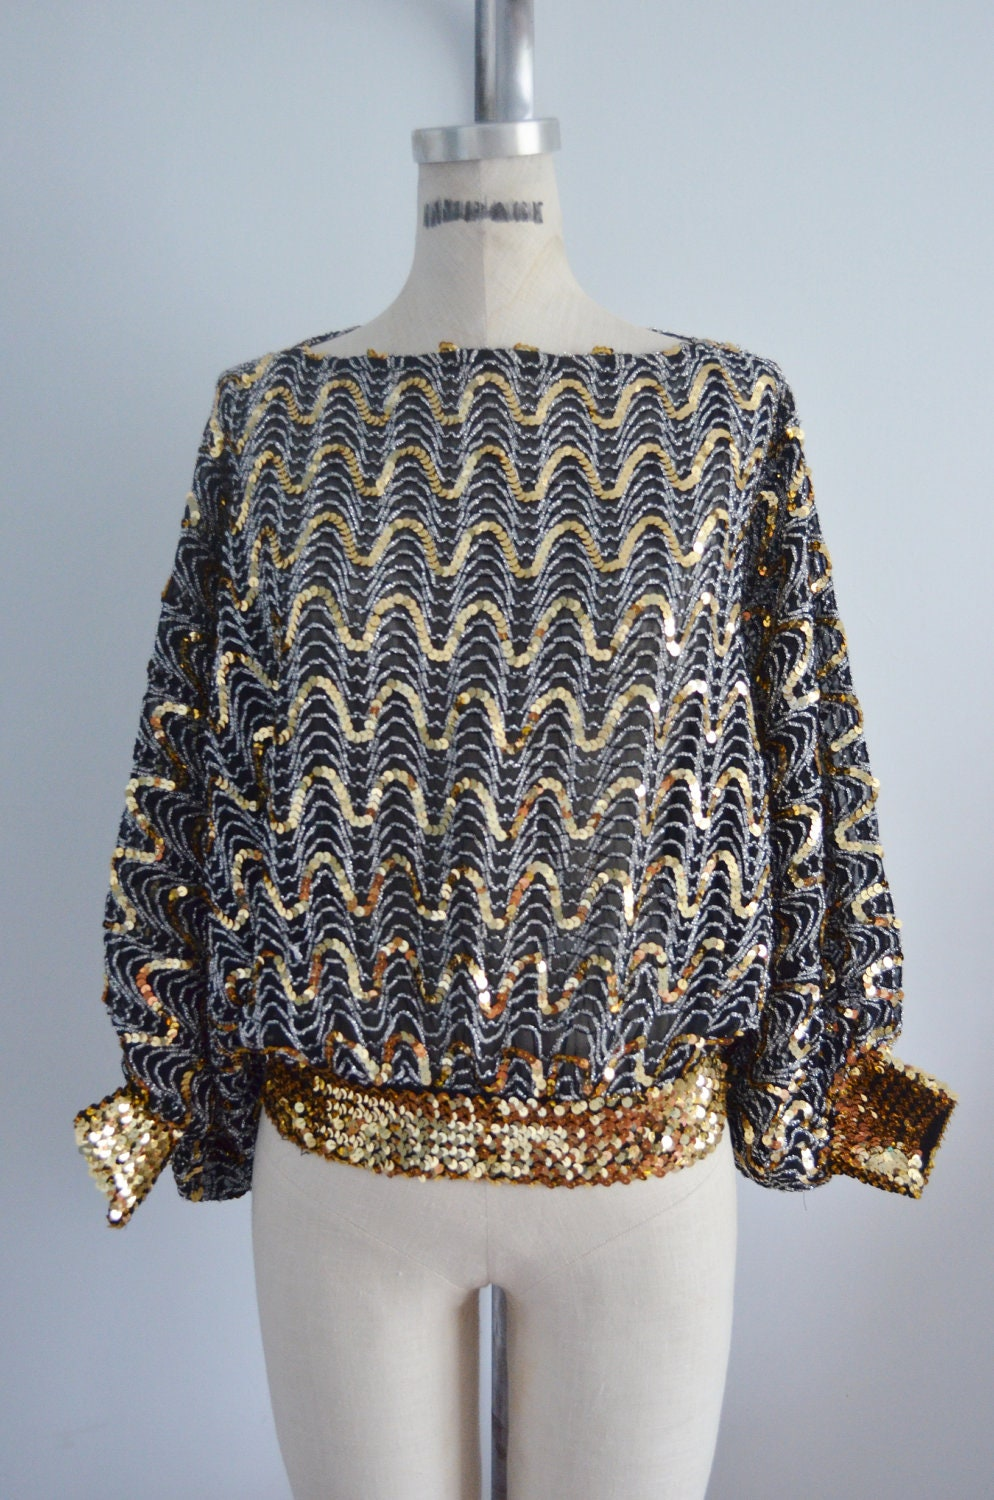 Vintage 70s GLAM Sequins BATWING DISCO Top Blouse by ...